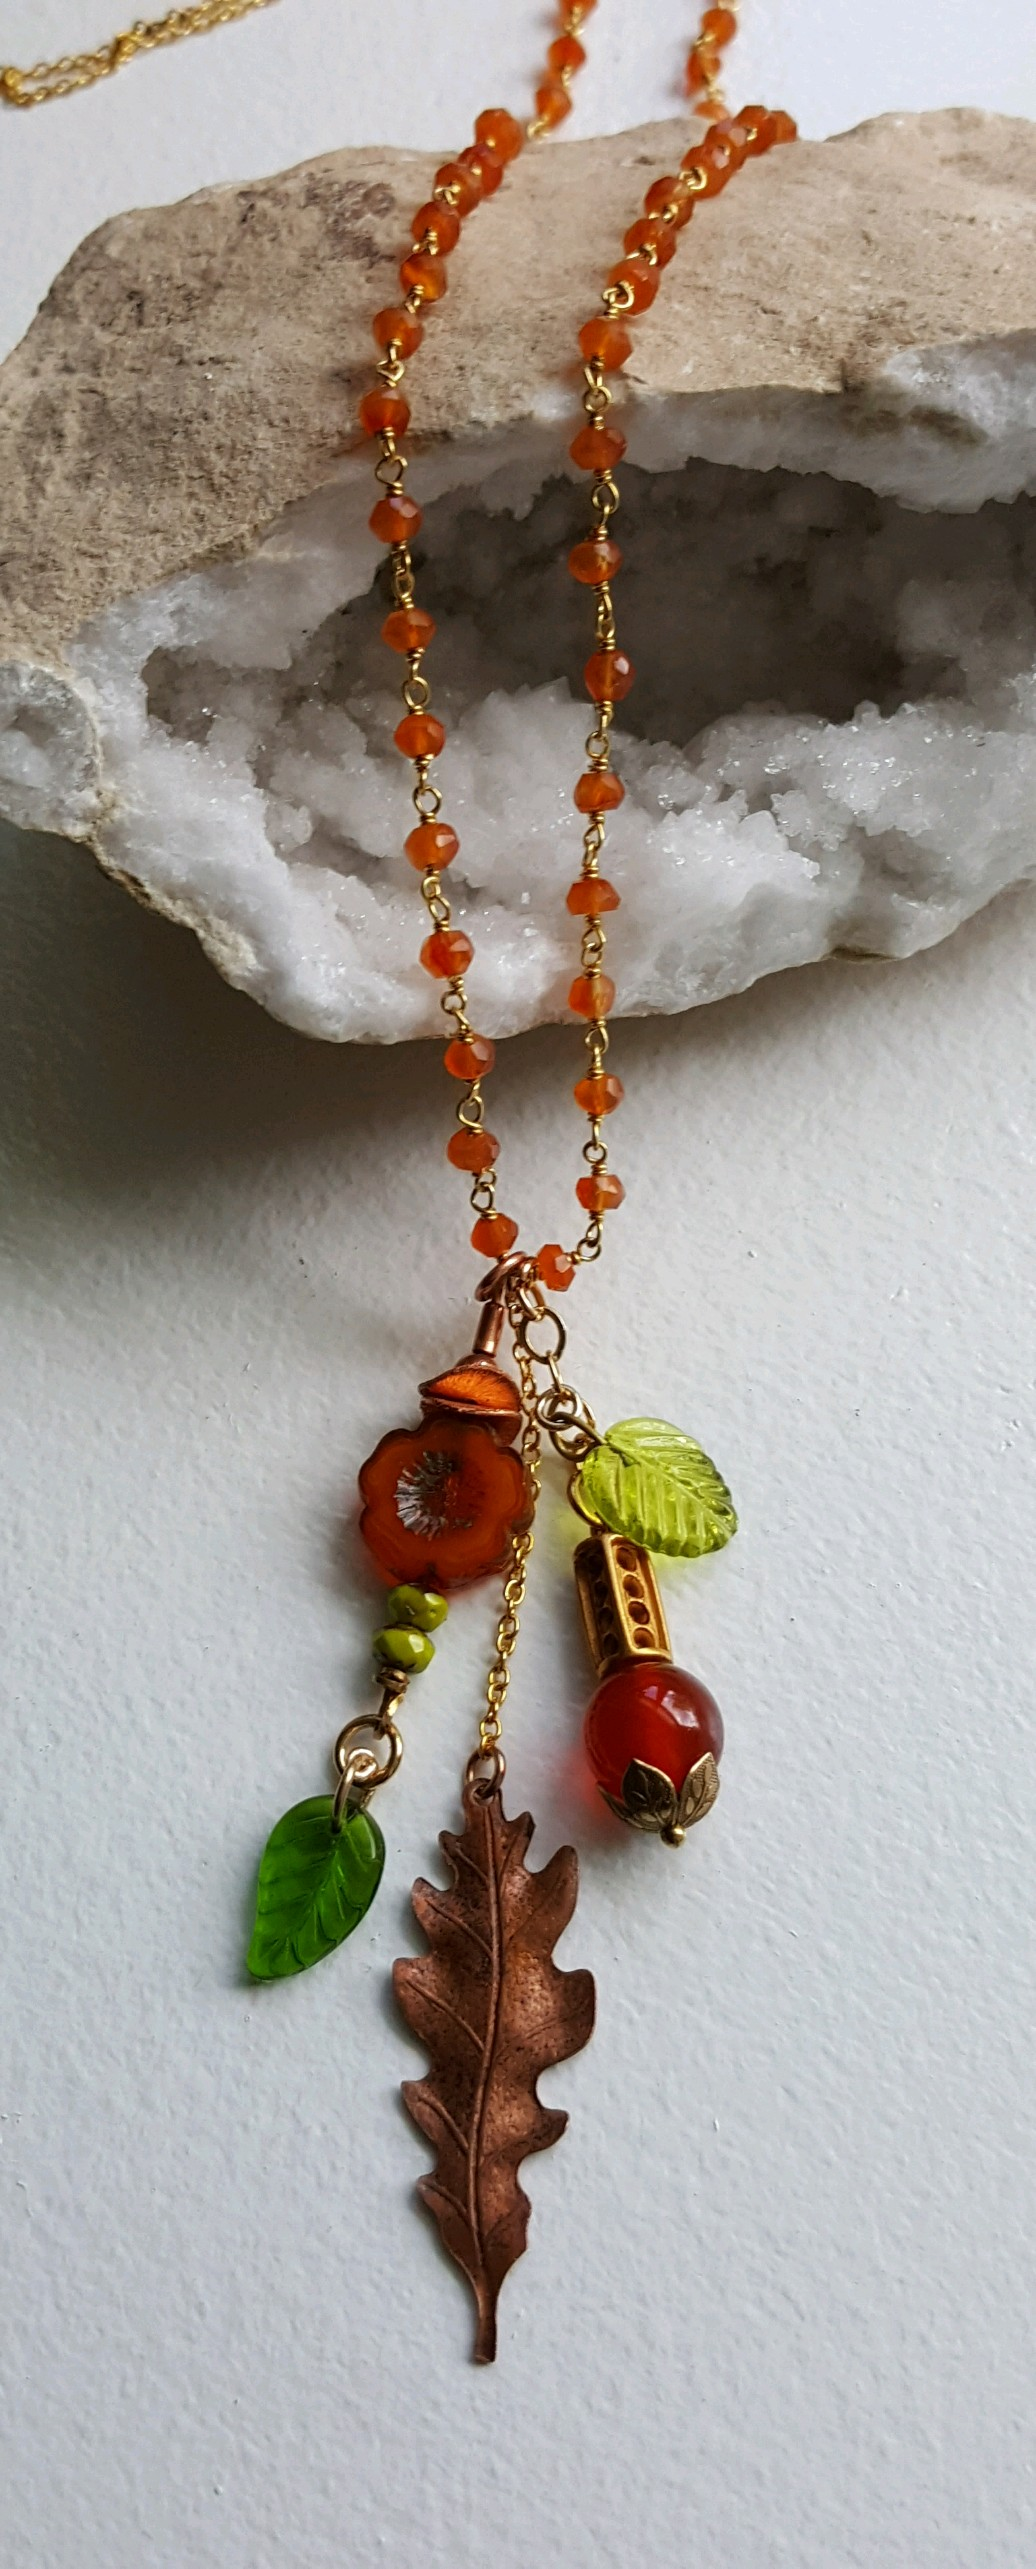 Autumn pendant with leaf and